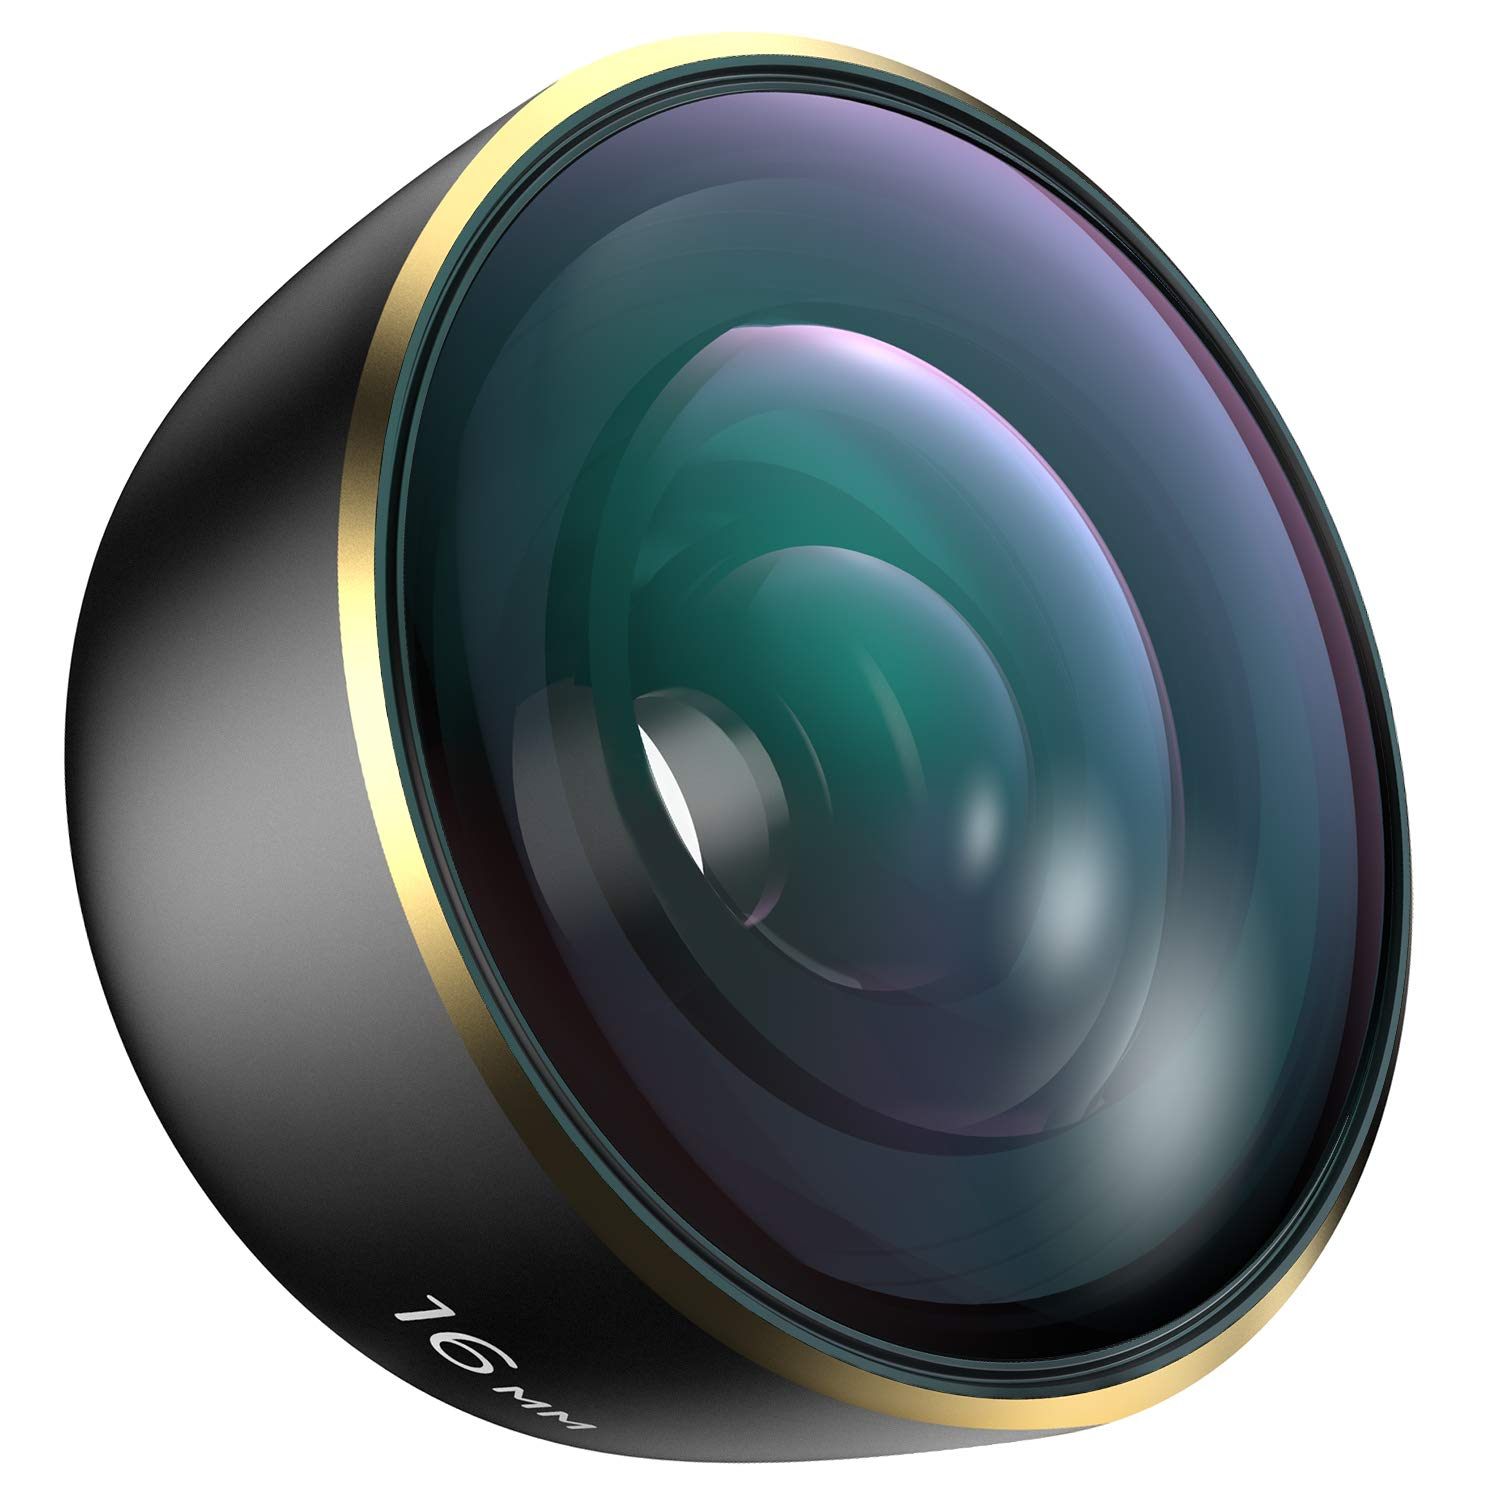 Wide Phone Camera Lens for iPhone - Samsung Galaxy and Pixel, Rovtop More Professional HD 16 mm Wide Angle Lens Kit with Travel Case